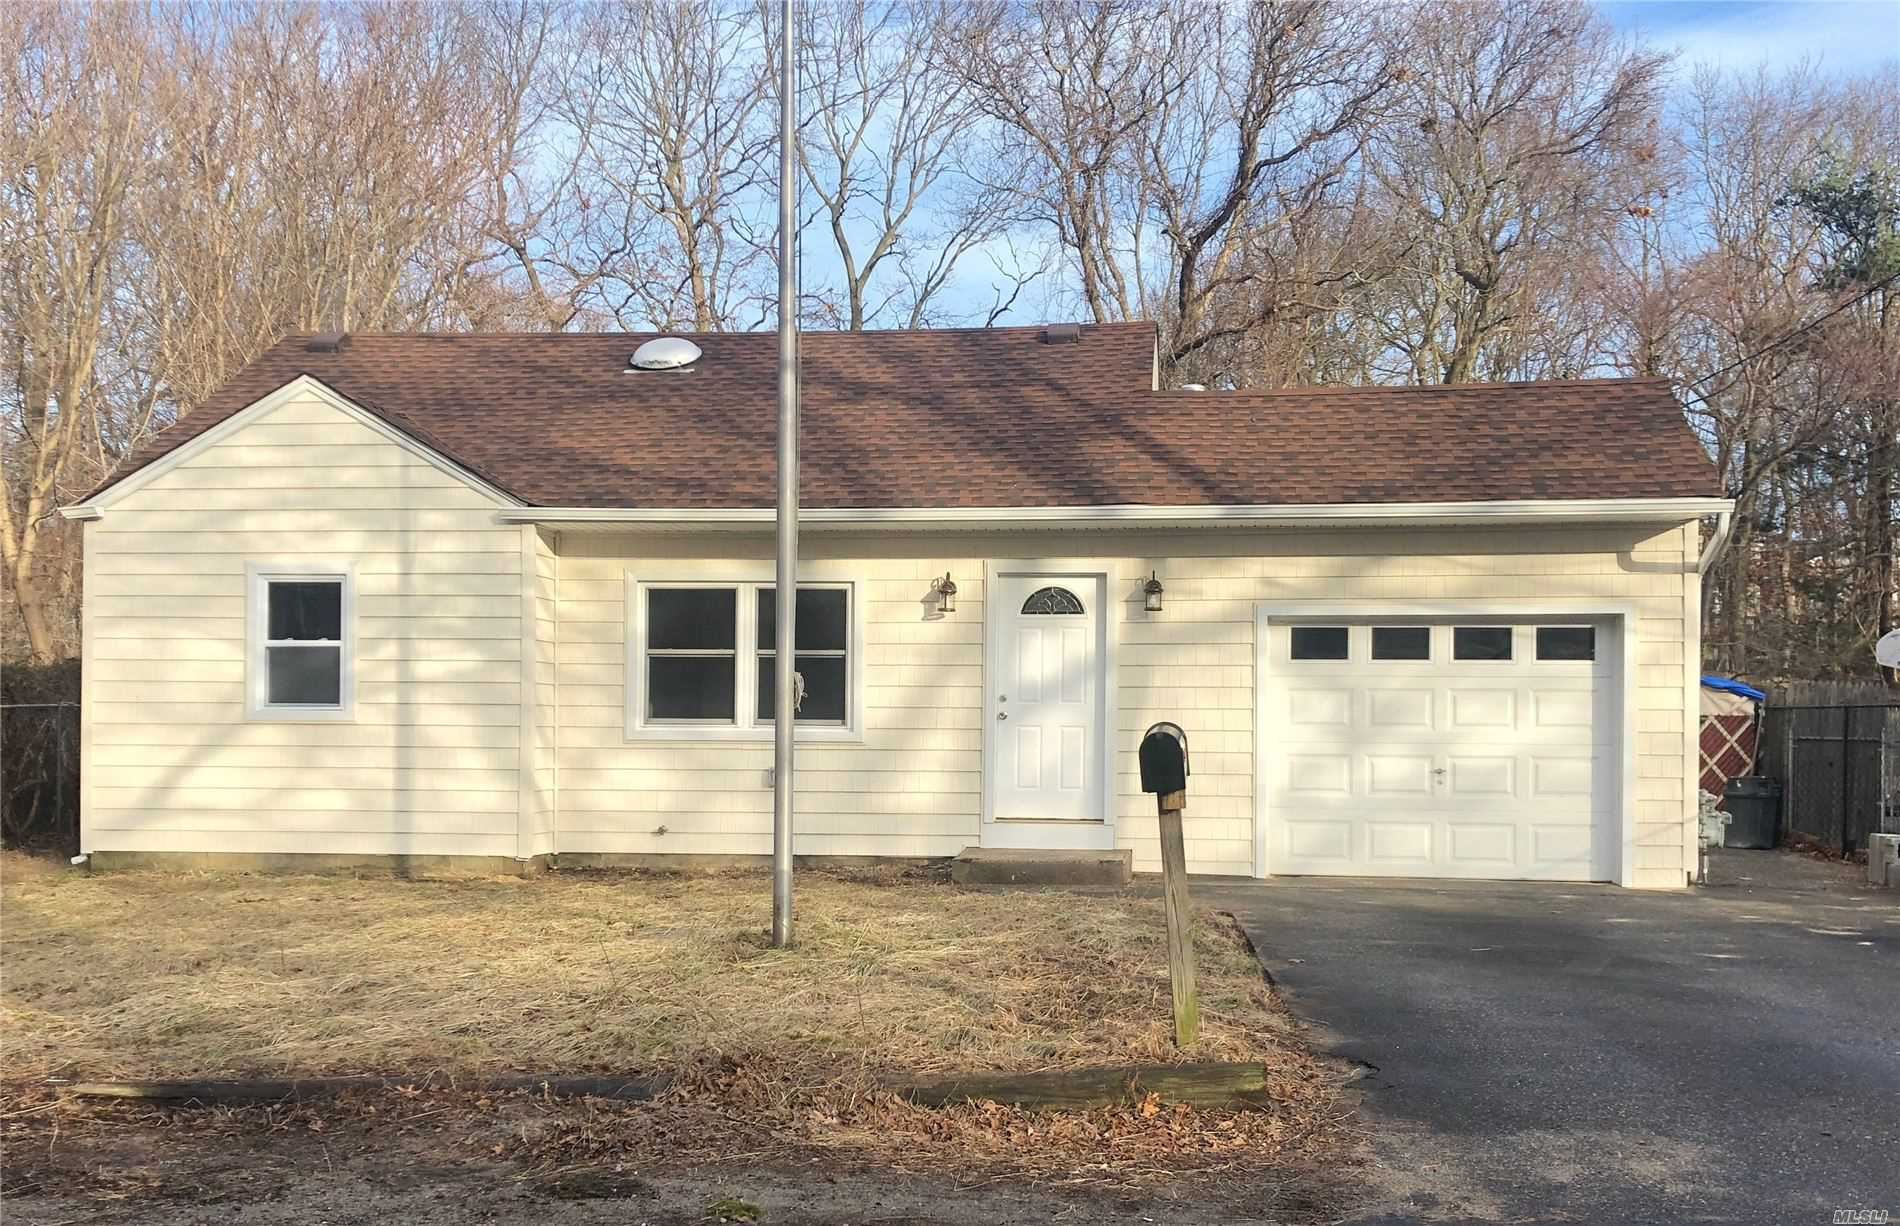 133 Ohls Street, Patchogue, NY 11772 - MLS#: 3191373